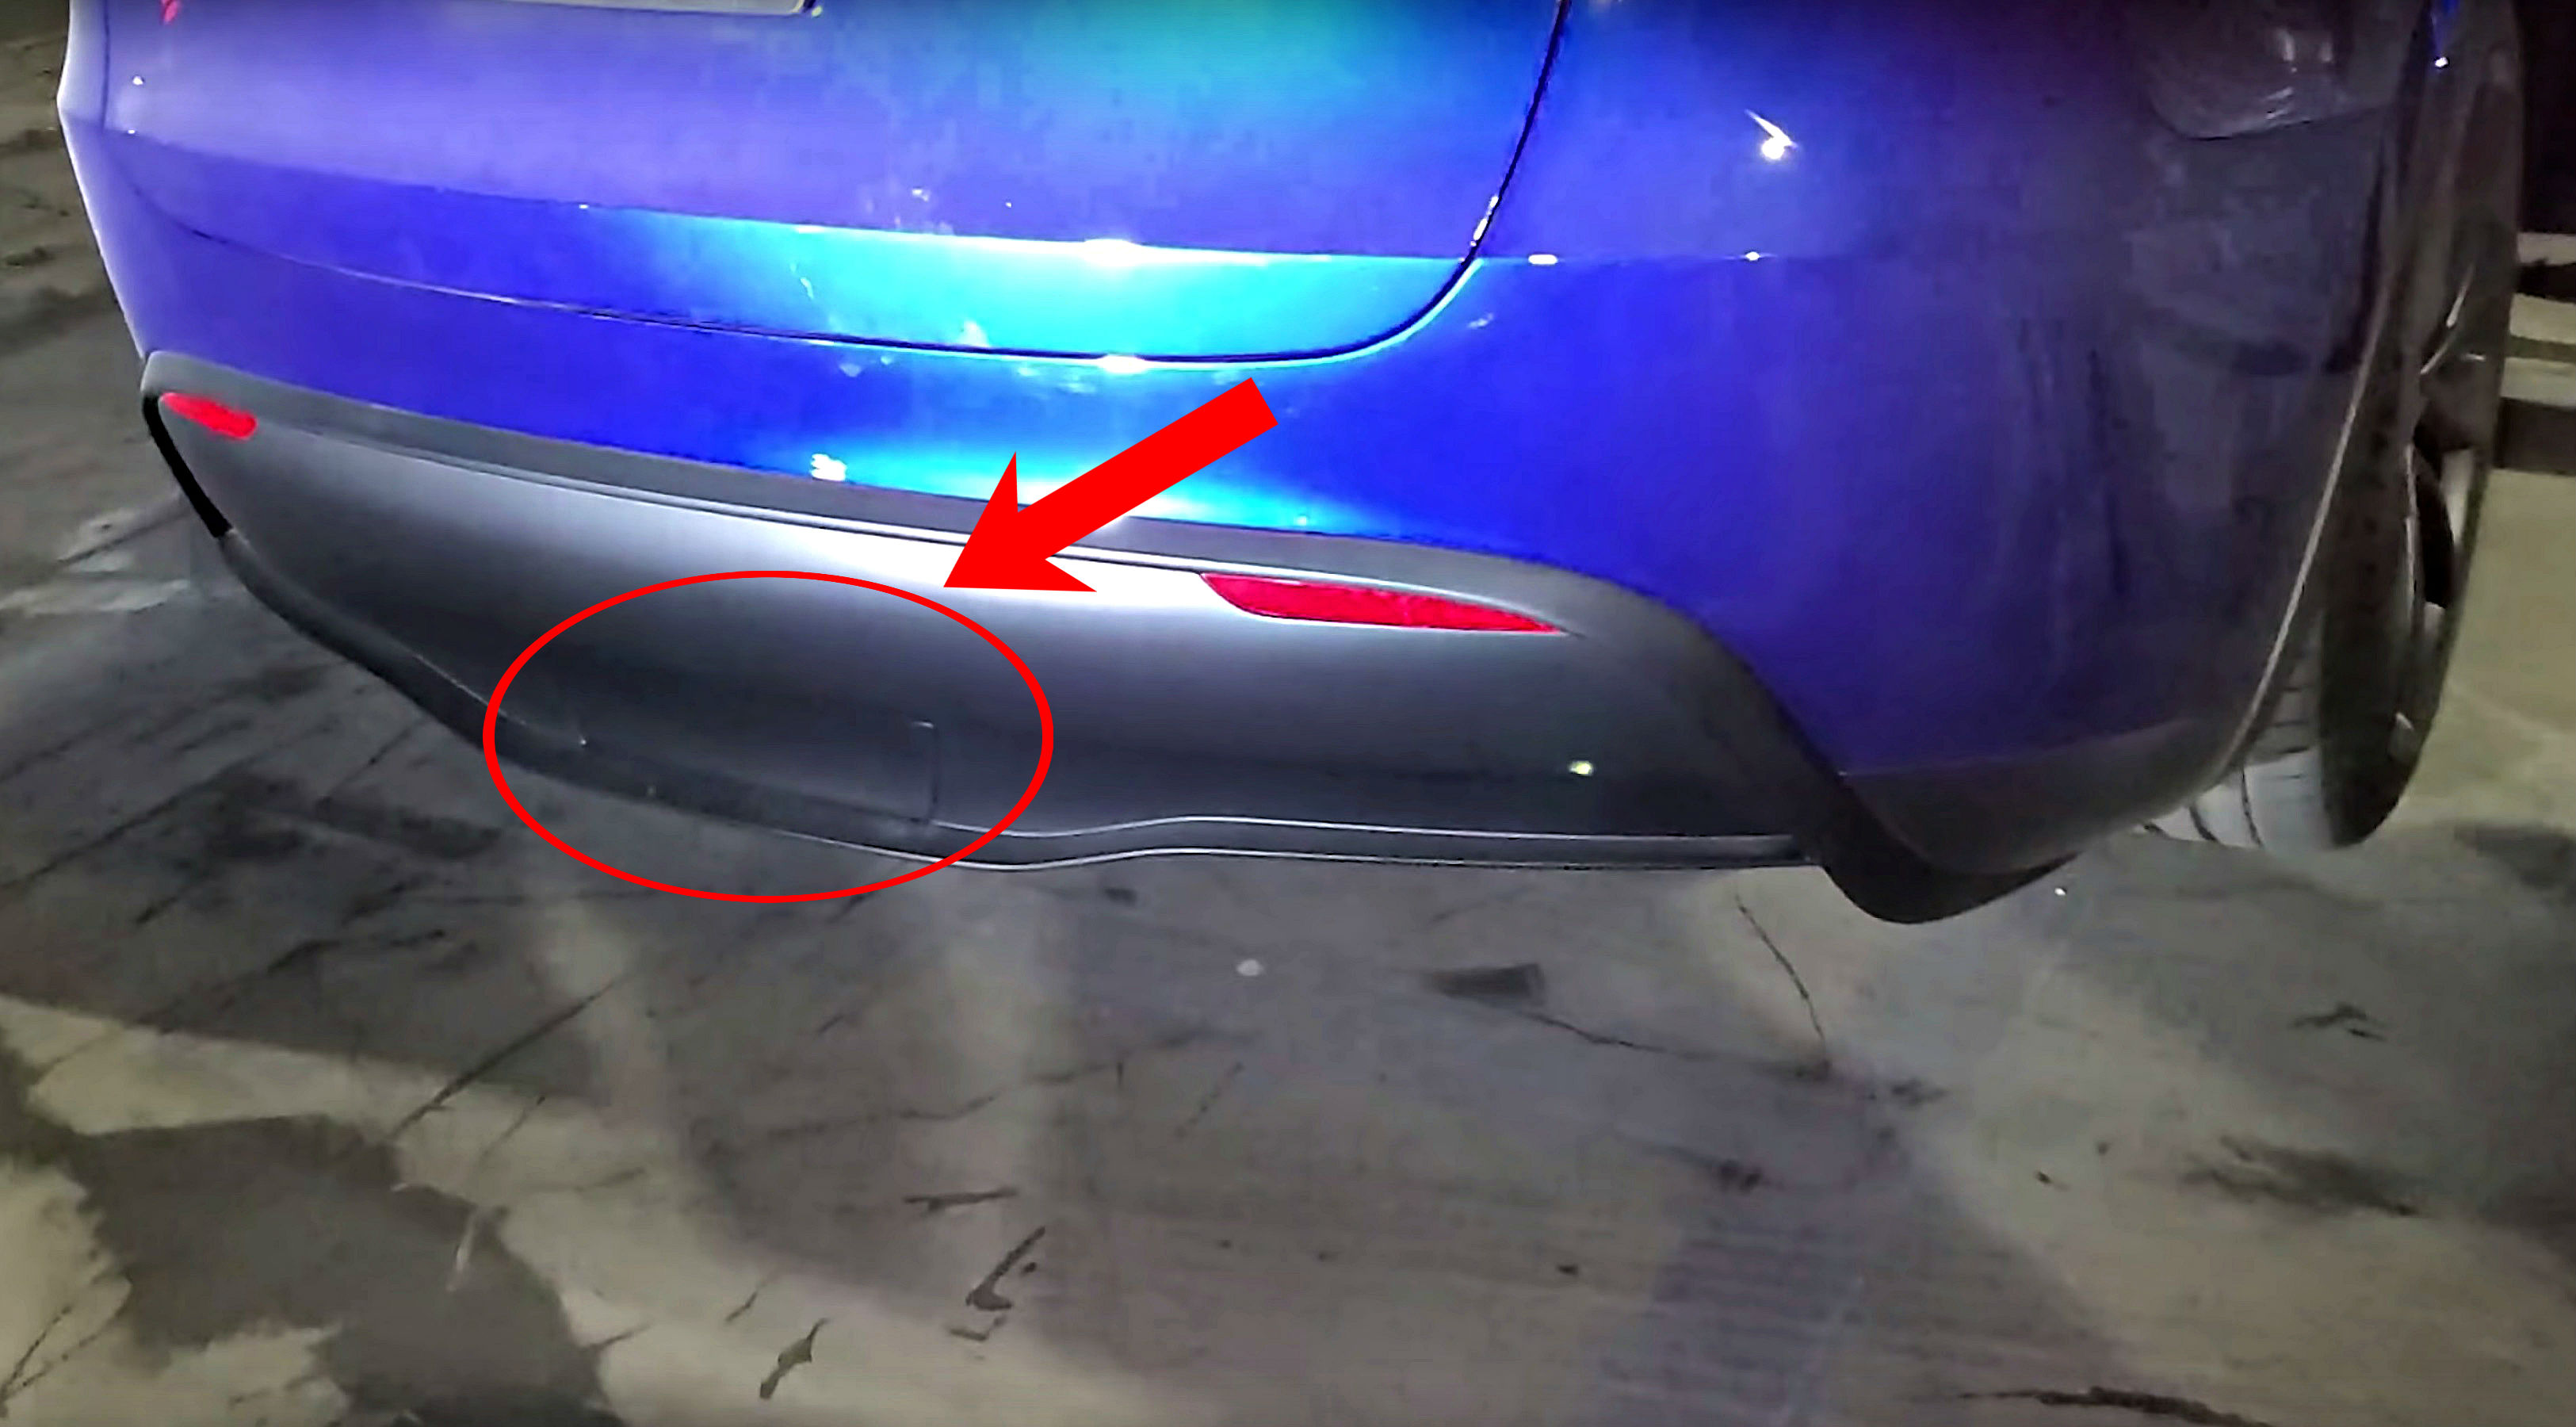 Tesla Model Y Towing Capability Teased With Rear Cover Plate For Hitch Receiver